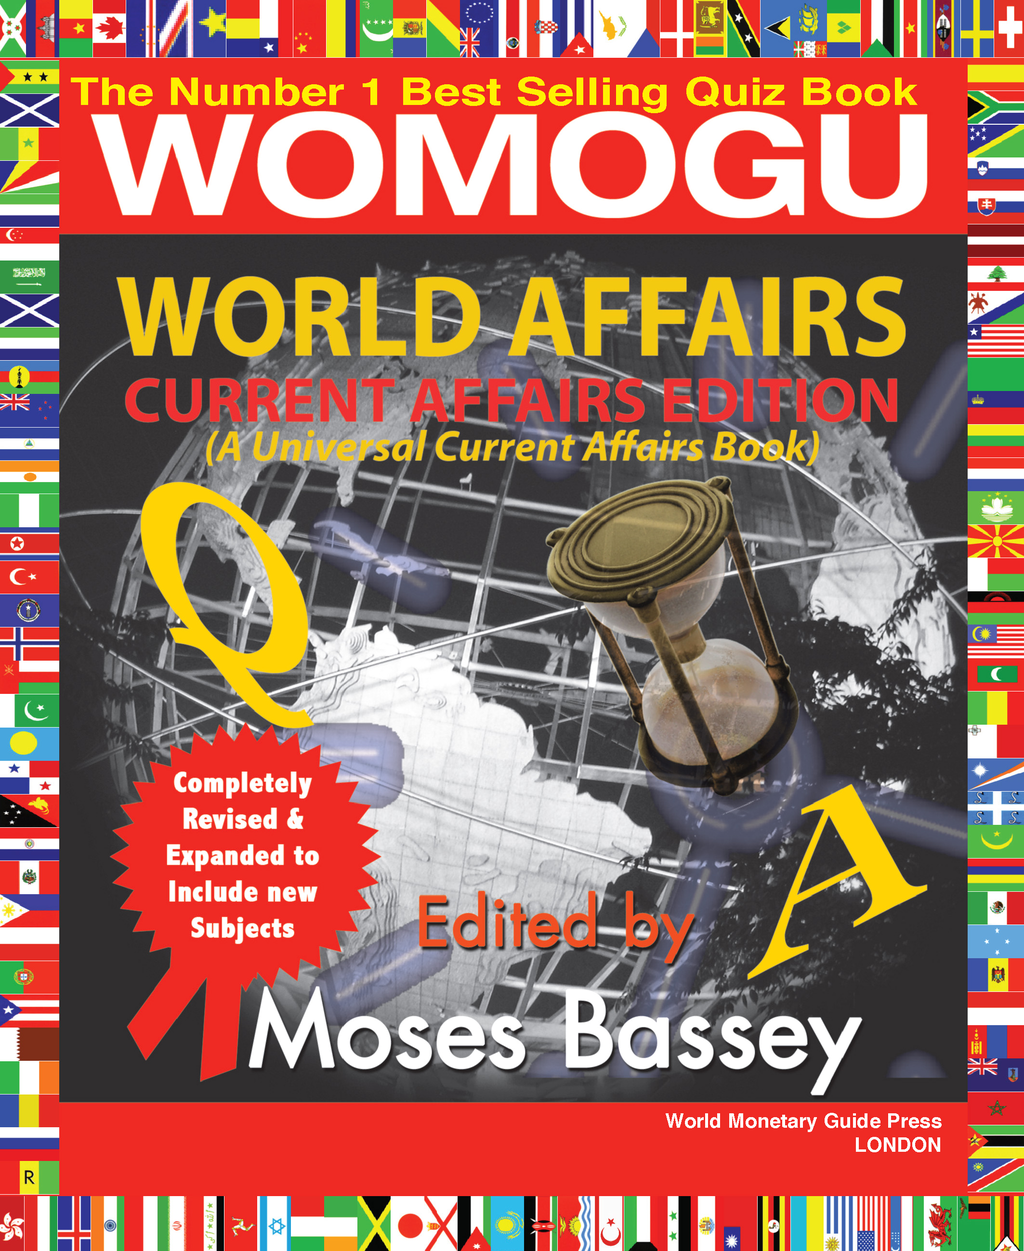 World Affairs-A Universal Current Affairs Edition: A Universal Current Affairs Edition